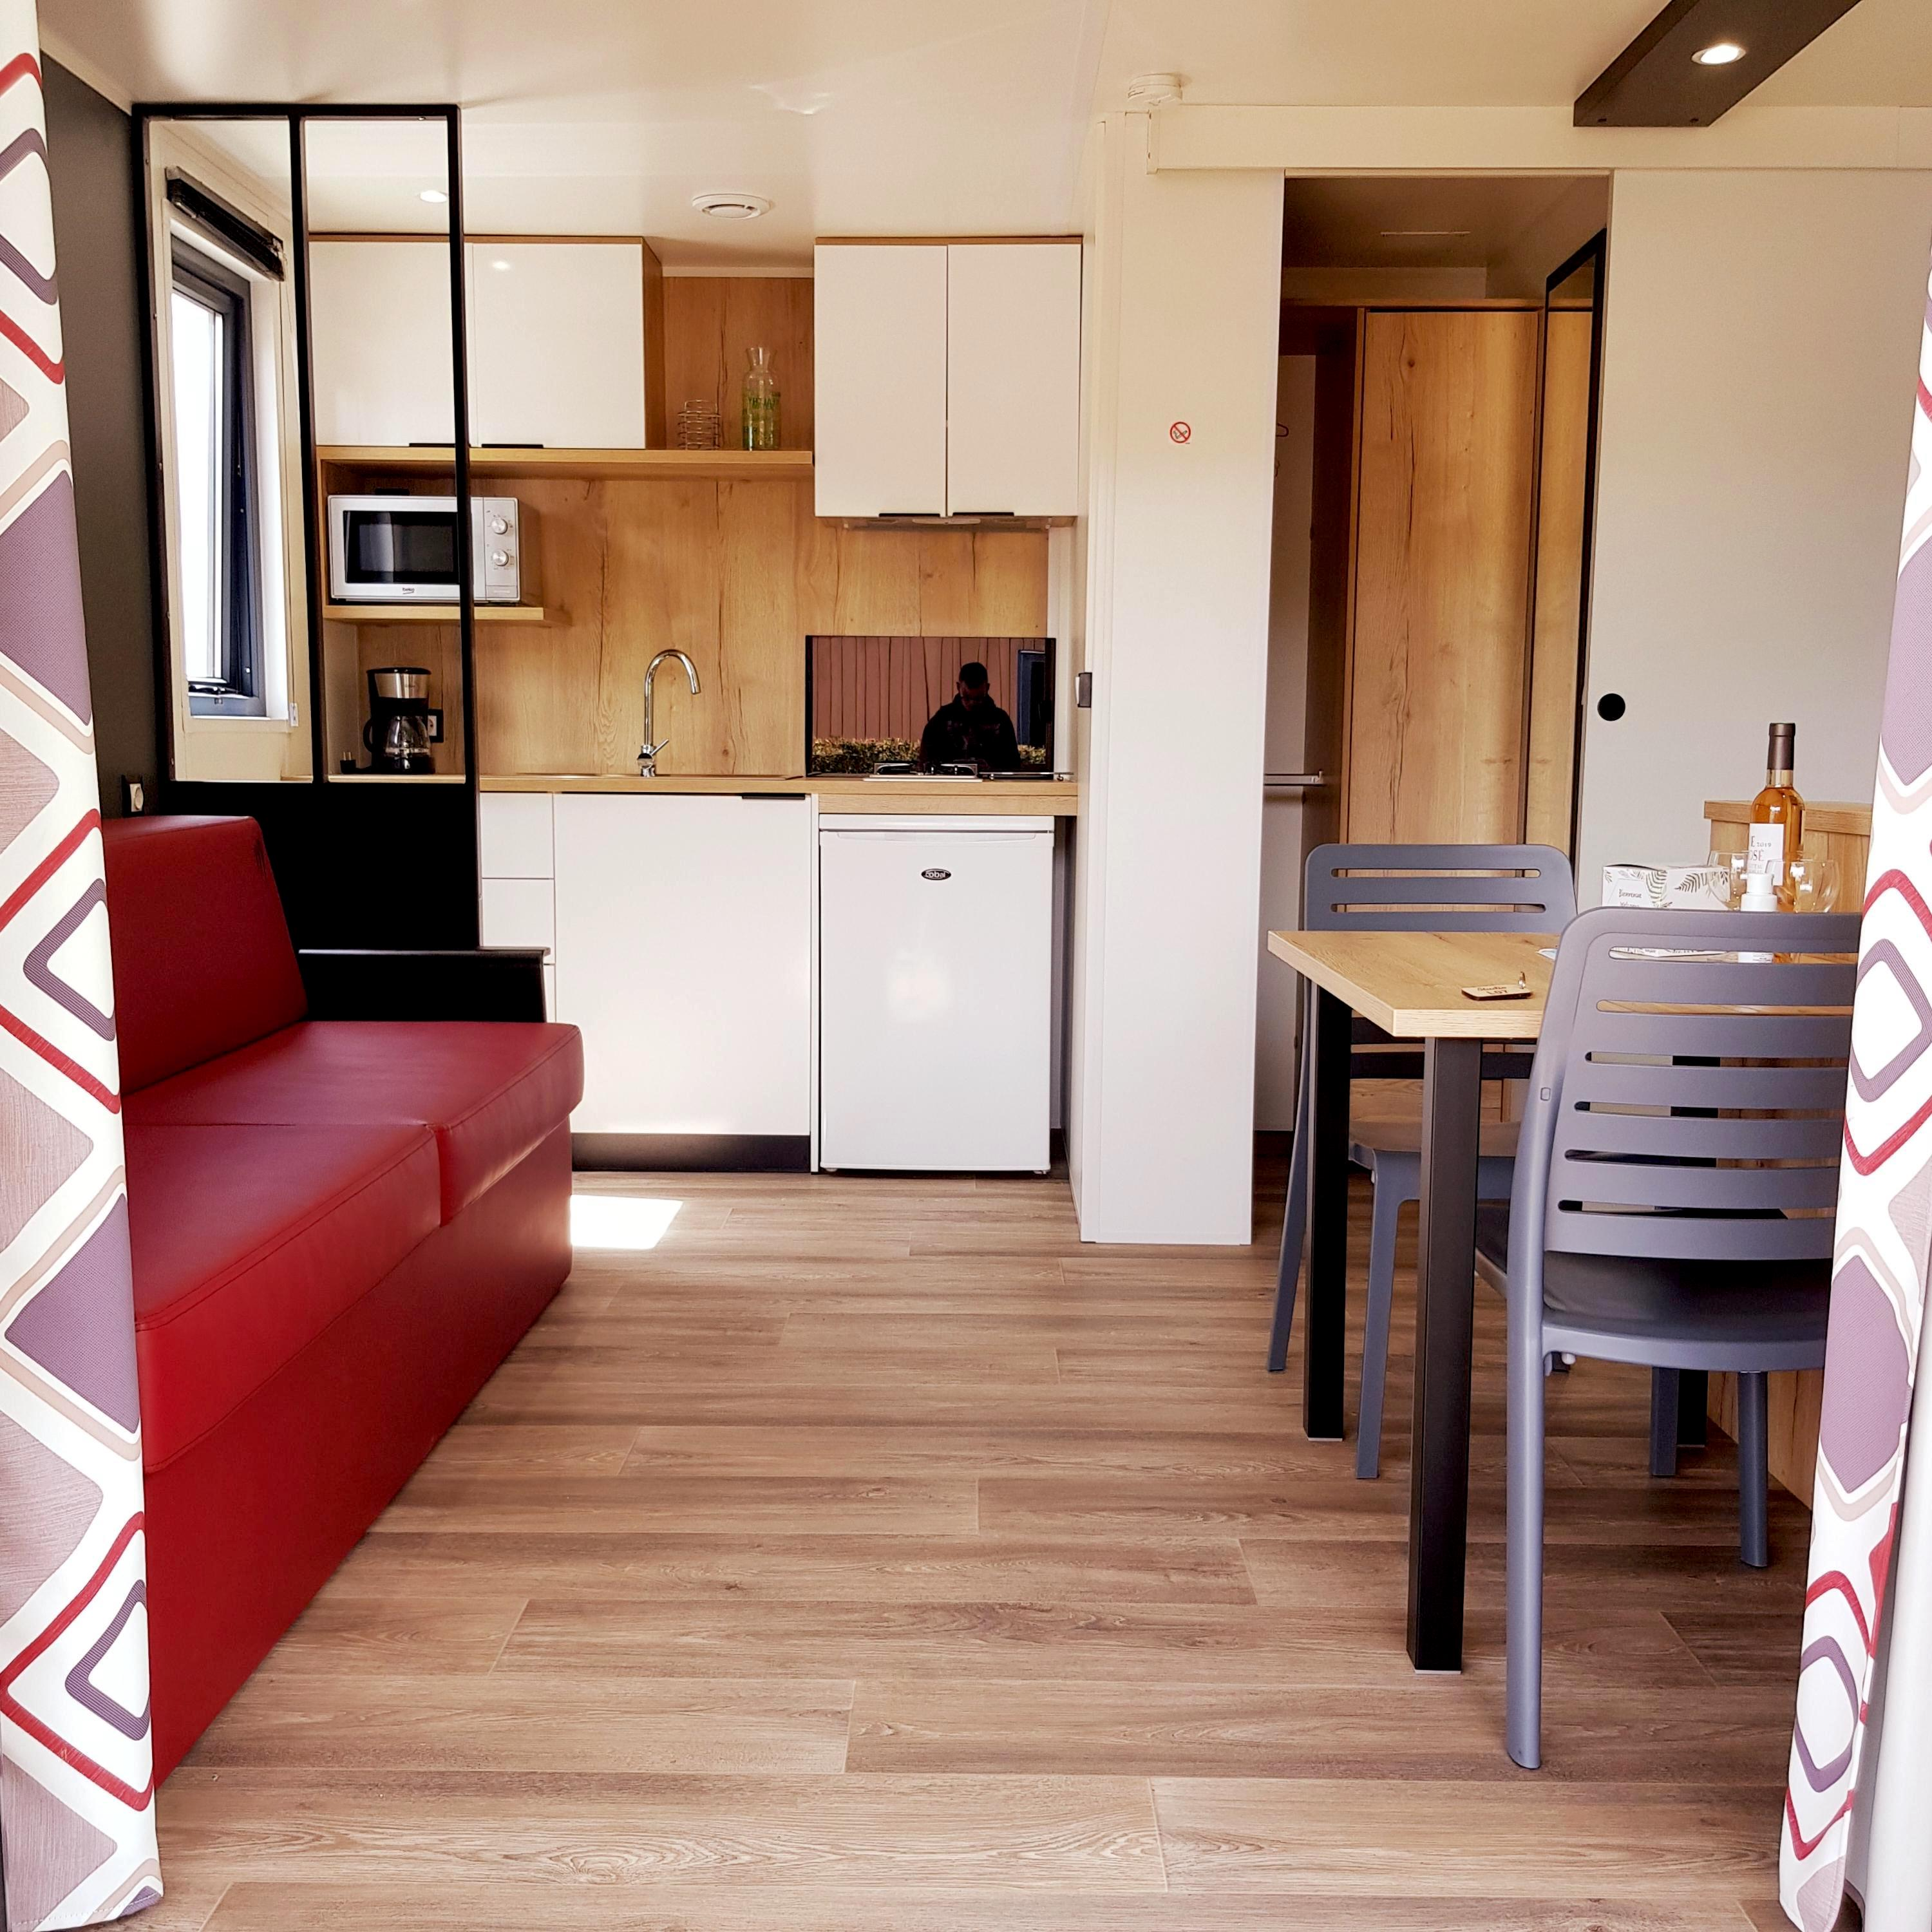 mobilhome-nv1chambre-camping-bel-air-bordeaux-2